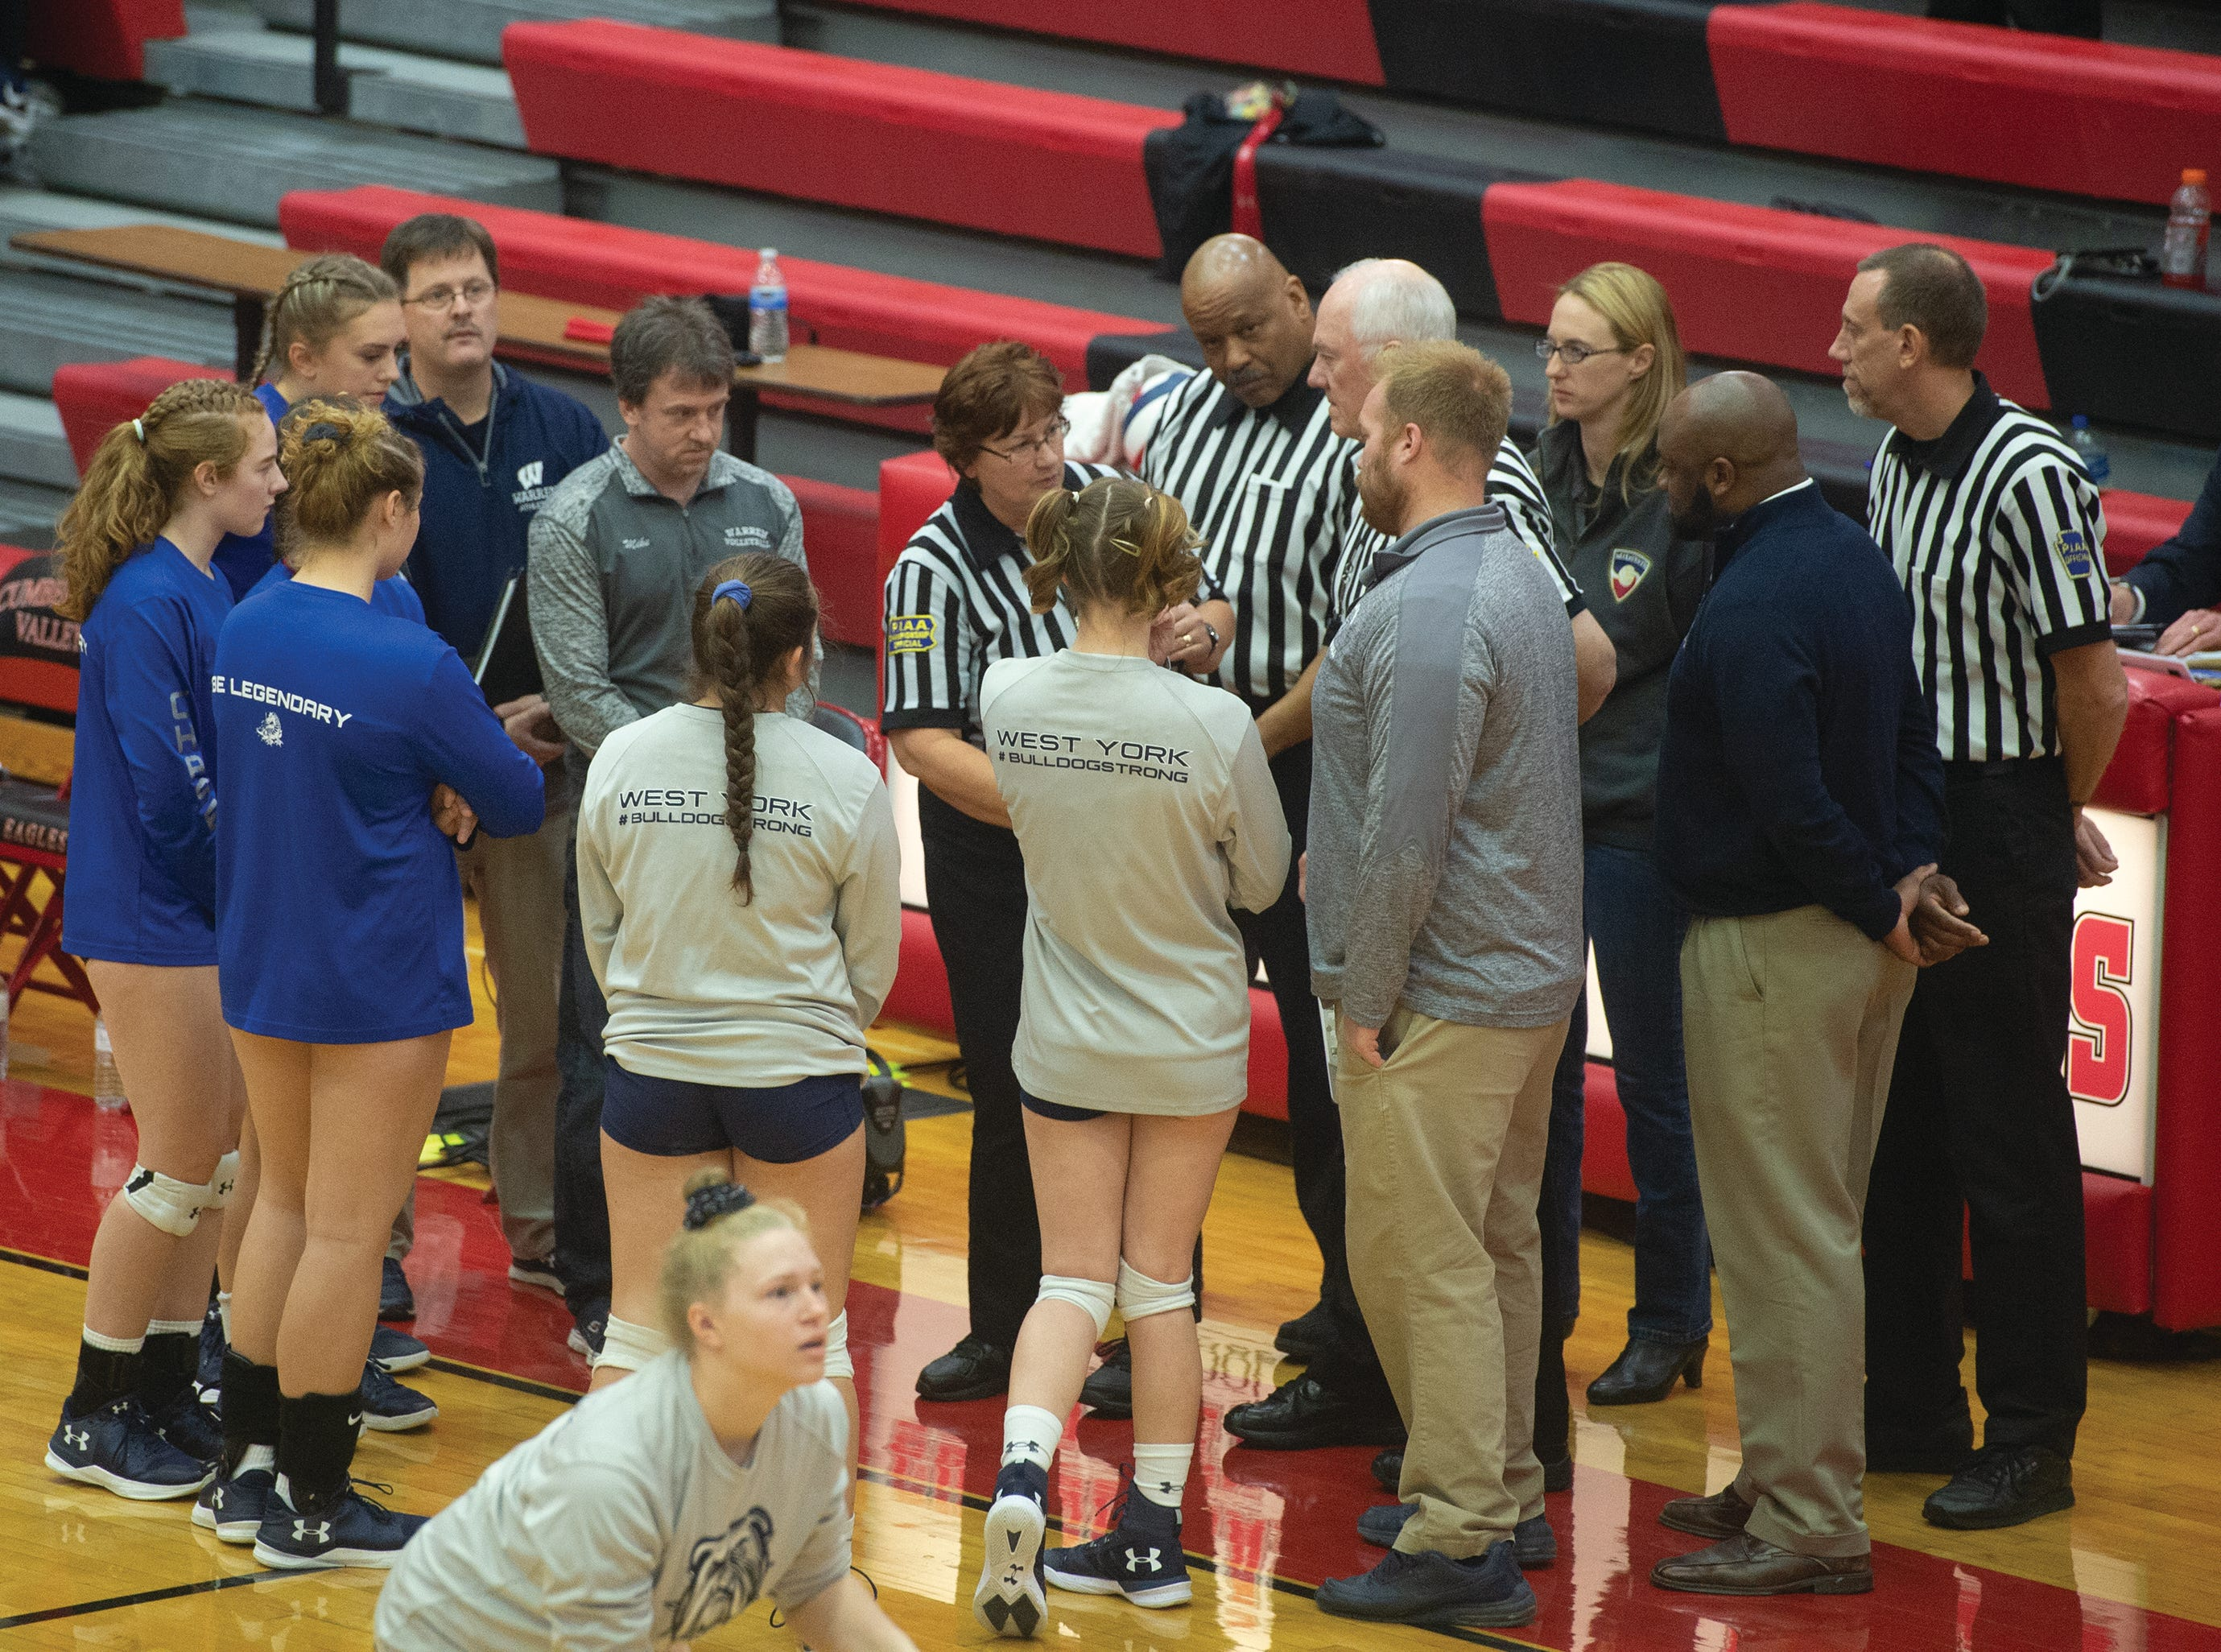 West York and Warren captains and coaches meet with officials ahead of the PiAA Class 3A girls' volleyball championship Saturday, Nov. 17, 2018 at Cumberland Valley High School.